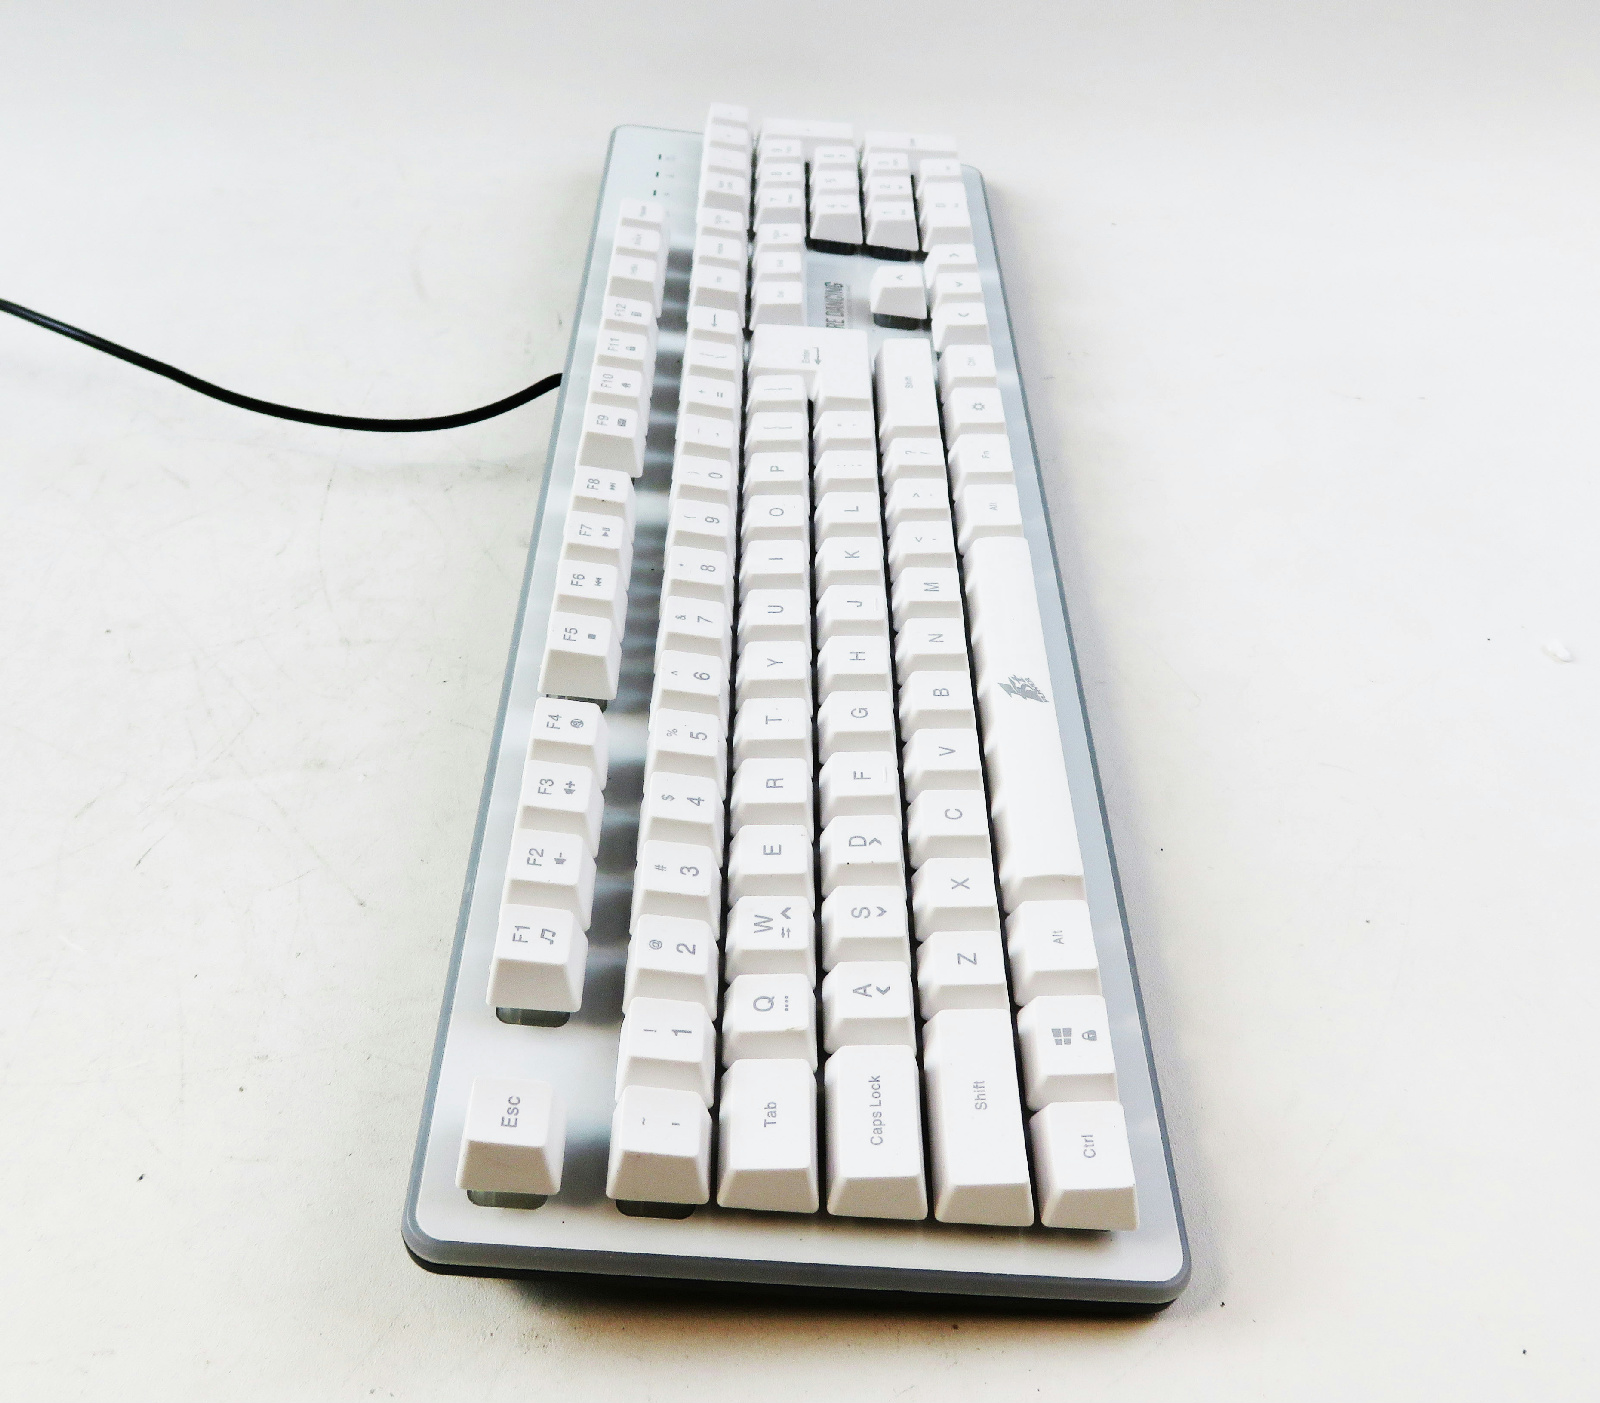 ... 1stplayer Fire Dancing Mechanical Feeling Gaming Keyboard Gk3 White Be the first to write a review